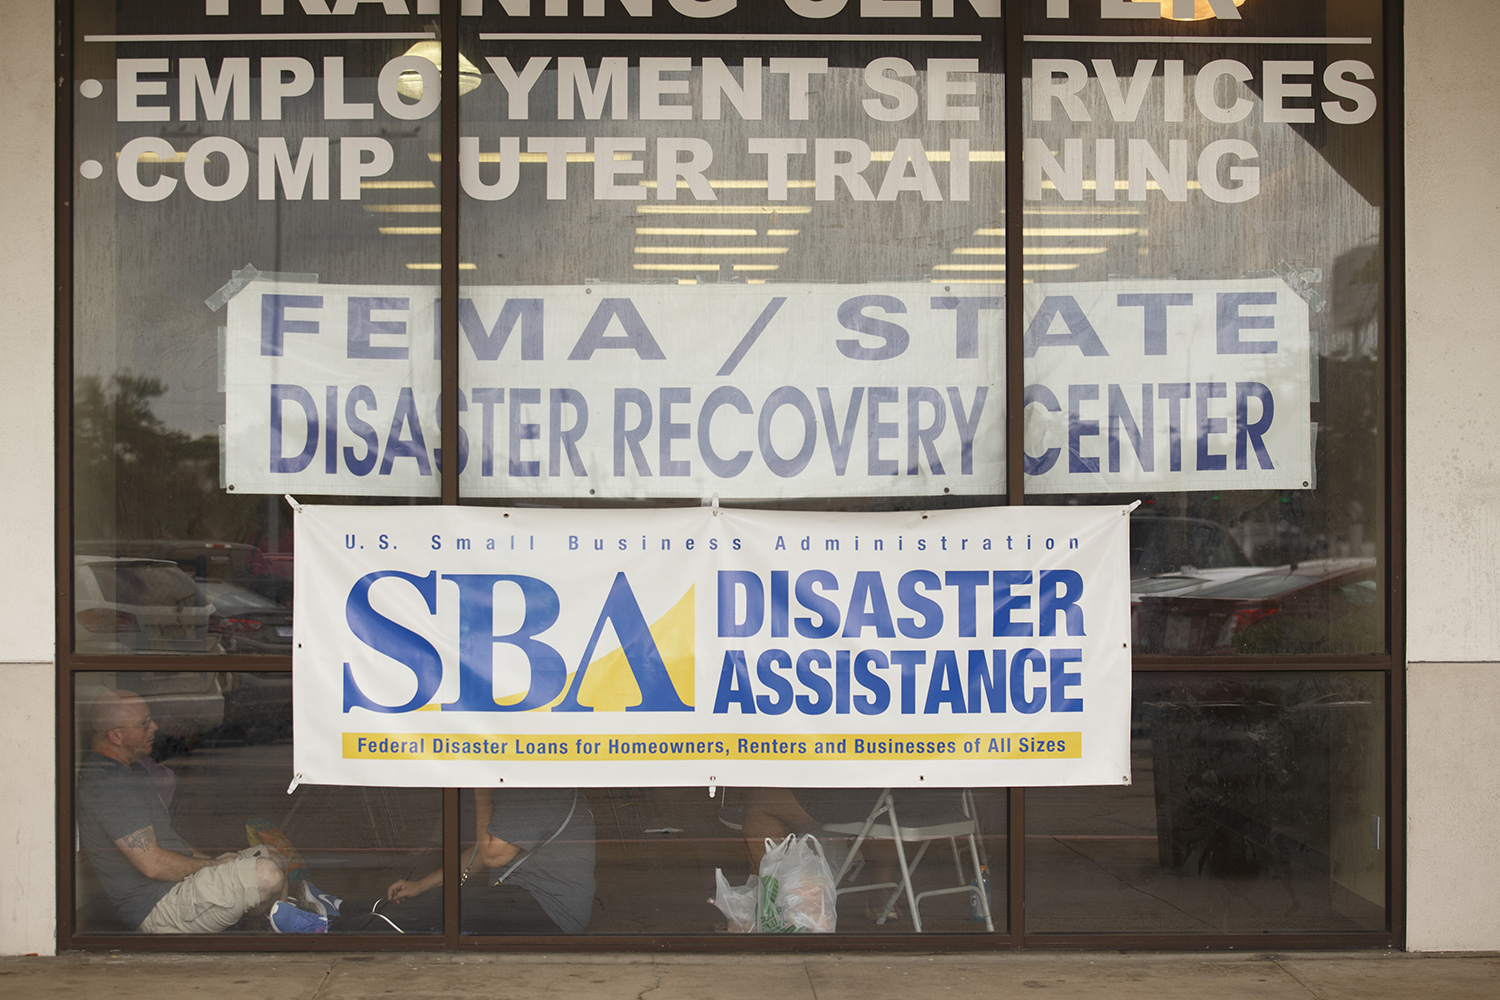 A Federal Emergency Management Agency disaster recovery center, where Harvey victims can register for assistance and find a number of other services from state, federal, and local organizations. There are currently two in the county— this one in Beaumont, one in Port Arthur. Ken Higginbotham, a FEMA spokesman in Beaumont, said that flood damage was so extensive in Jefferson County that the agency had trouble finding a suitable location for them.